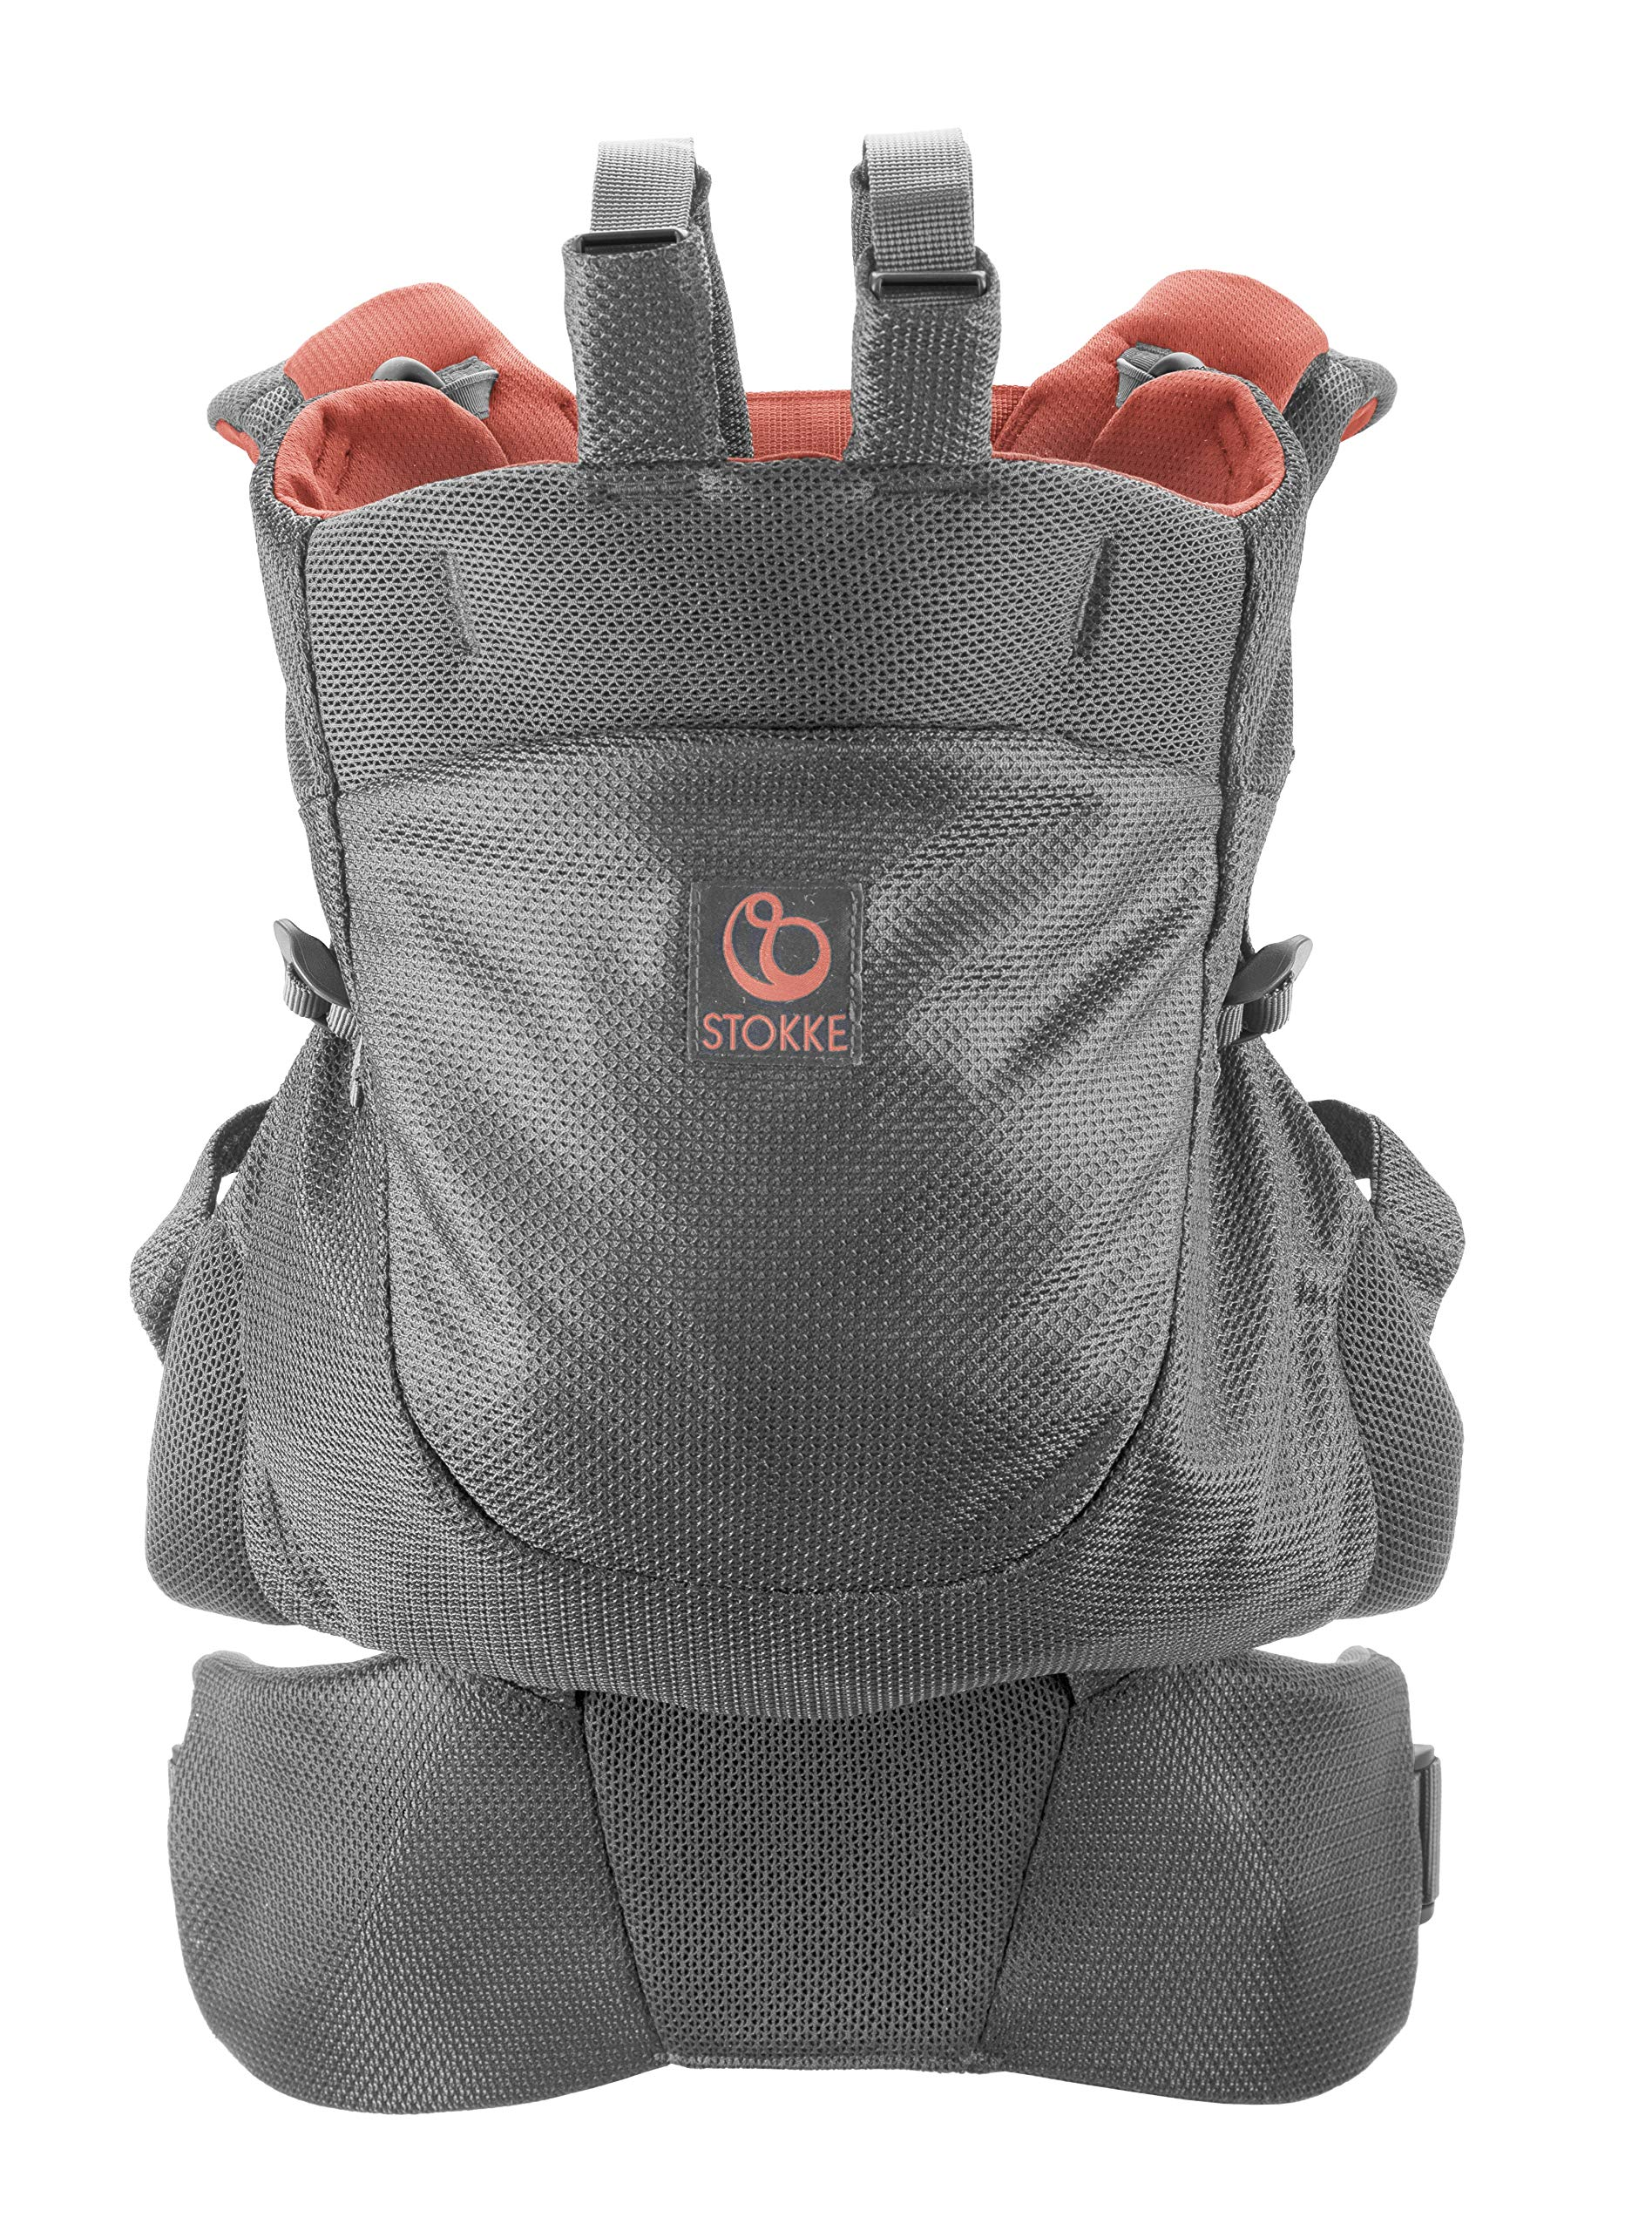 Stokke MyCarrier Back Carrier - Baby Carrier for Toddlers - Accessories for 3 in 1 Organic Cotton Carrying System - Ultralight & Ergonomic - Color: Coral Mesh Stokke With the MyCarrier wrap newborns feel sheltered when being close to the parents. From 9 months onwards the world can be discovered comfortably with the supplementary back carrier Research confirms that babies are much calmer and cry less when they feel the body heat and movements of their parents - the STOKKE MyCarrier provides this safe and secure feeling The 3 in 1 baby carrier allows three different carrying positions - on the stomach, either facing the parent or outwards and on the back with the back carrier suitable from 9 months 1